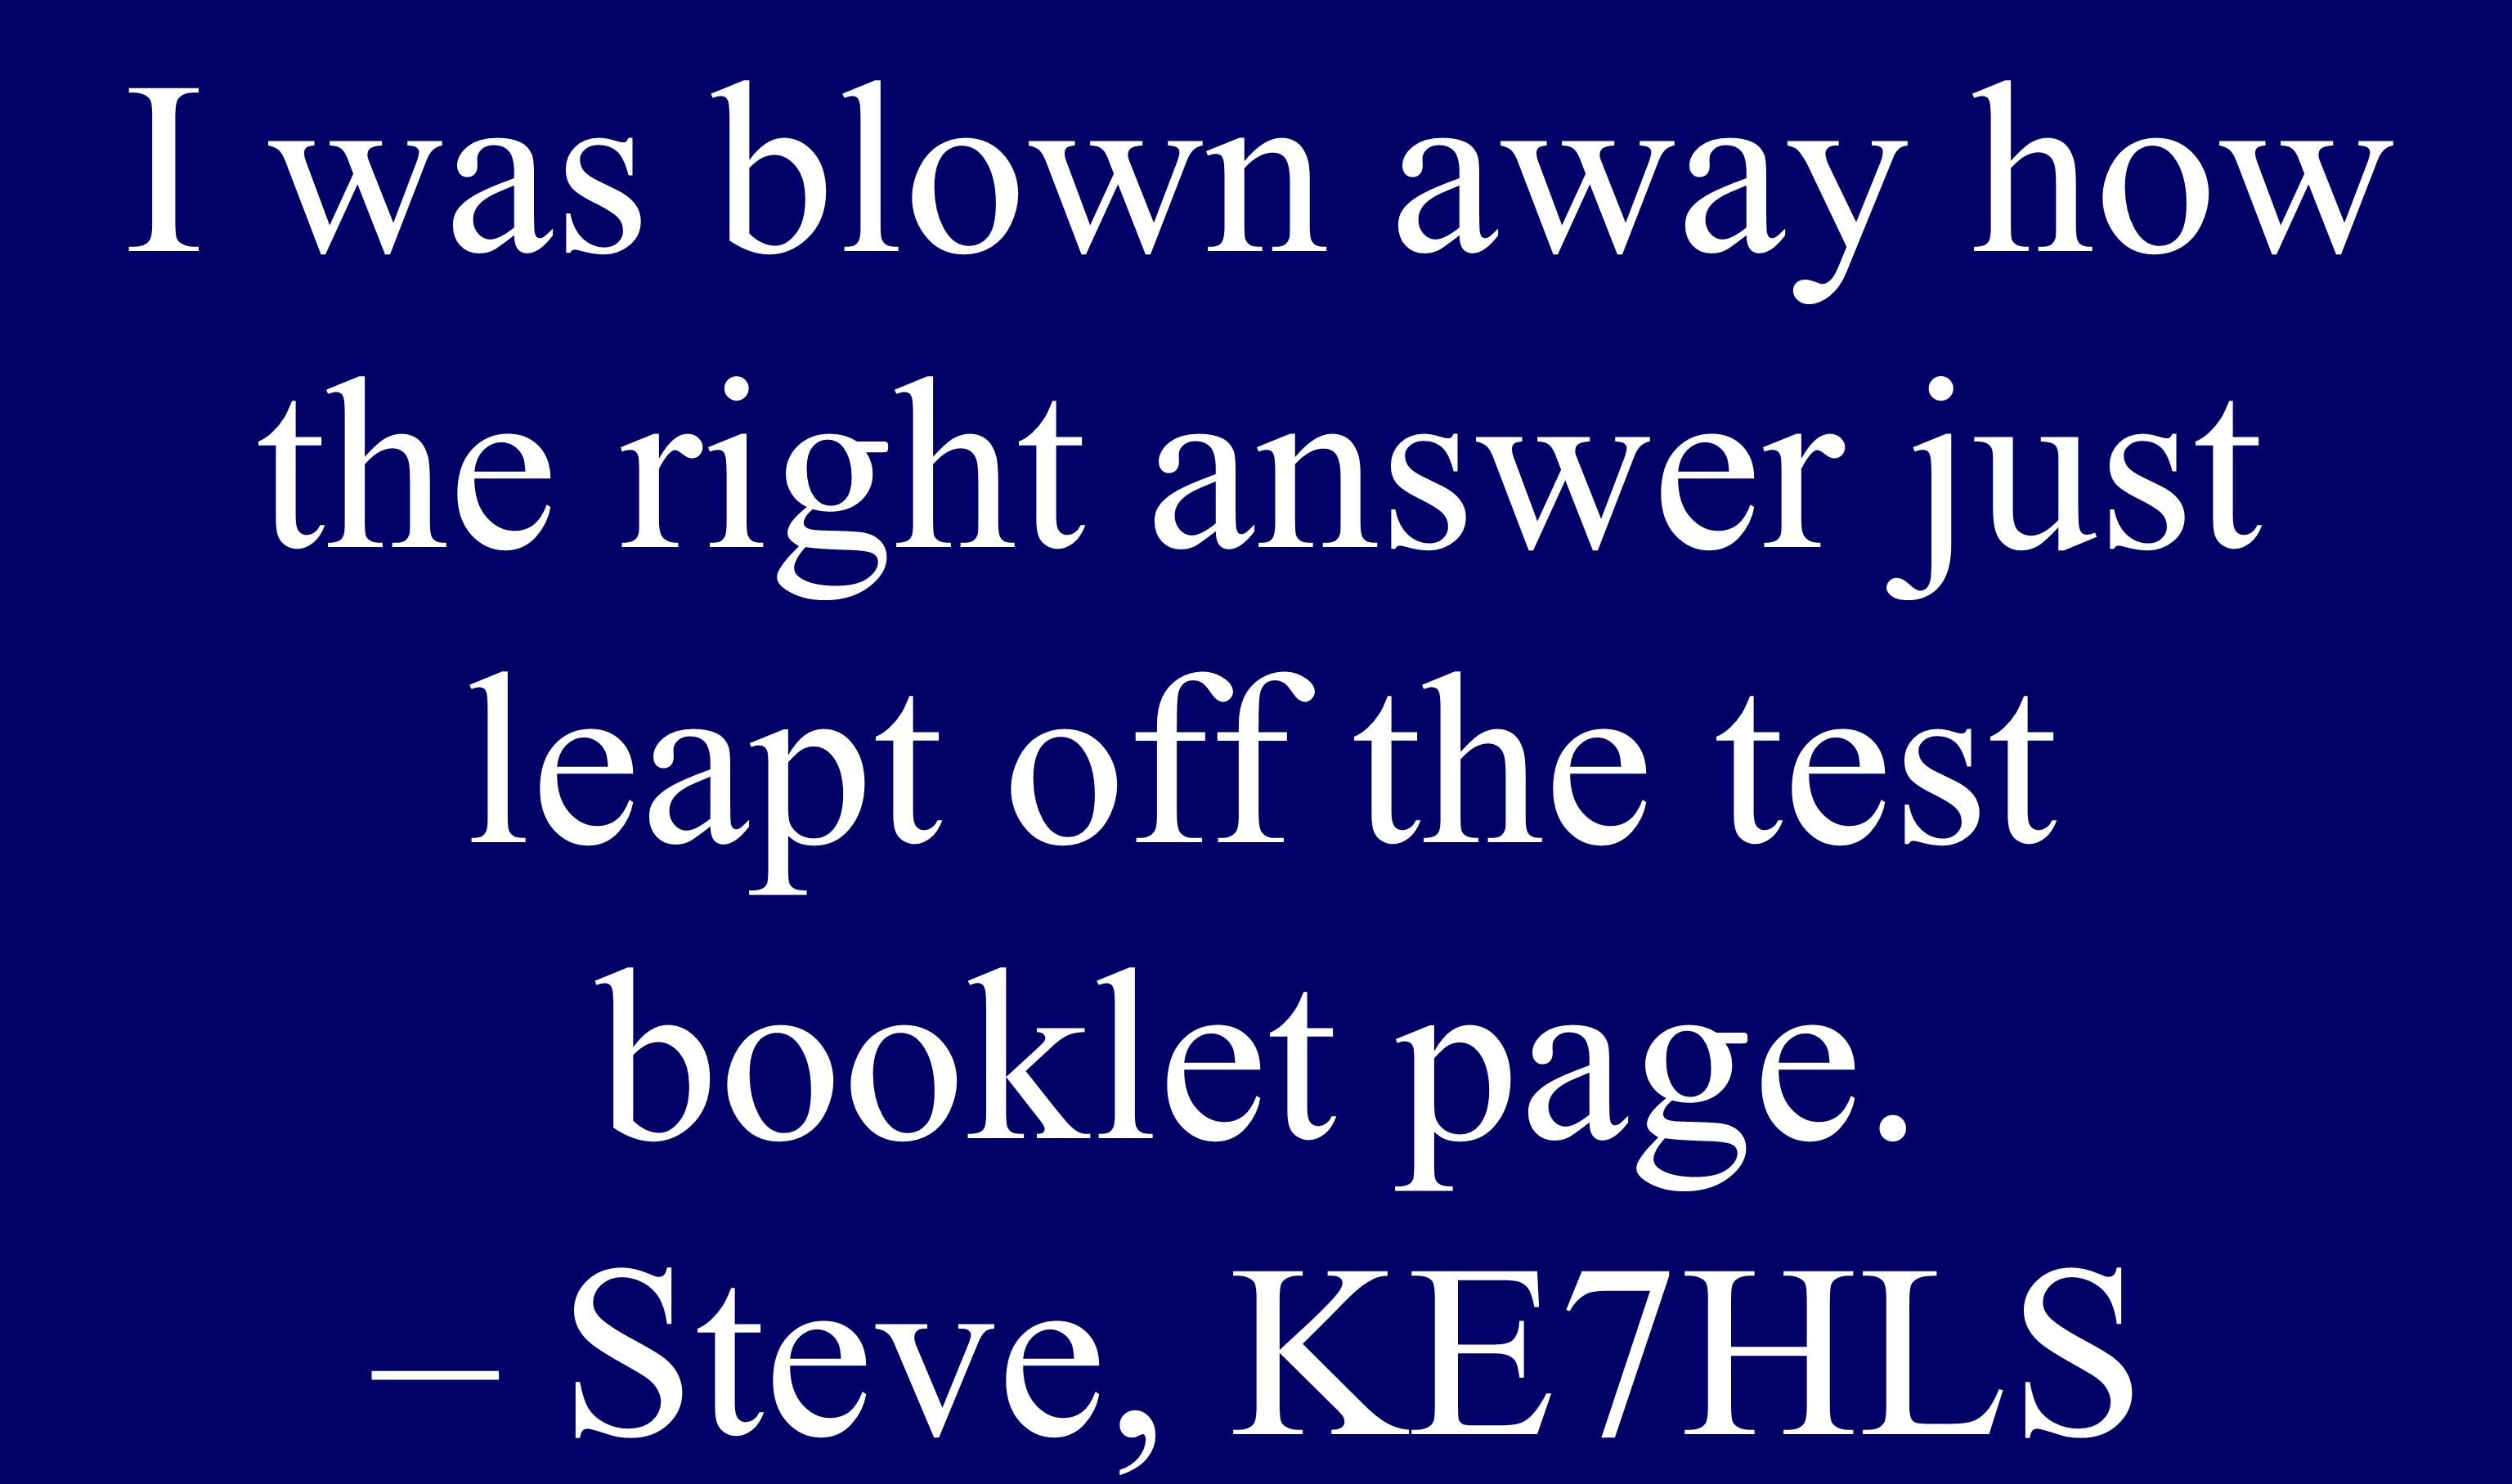 Scored 100% I was blown away how the right answer just leapt off the test booklet page. – Steve, KE7HLS